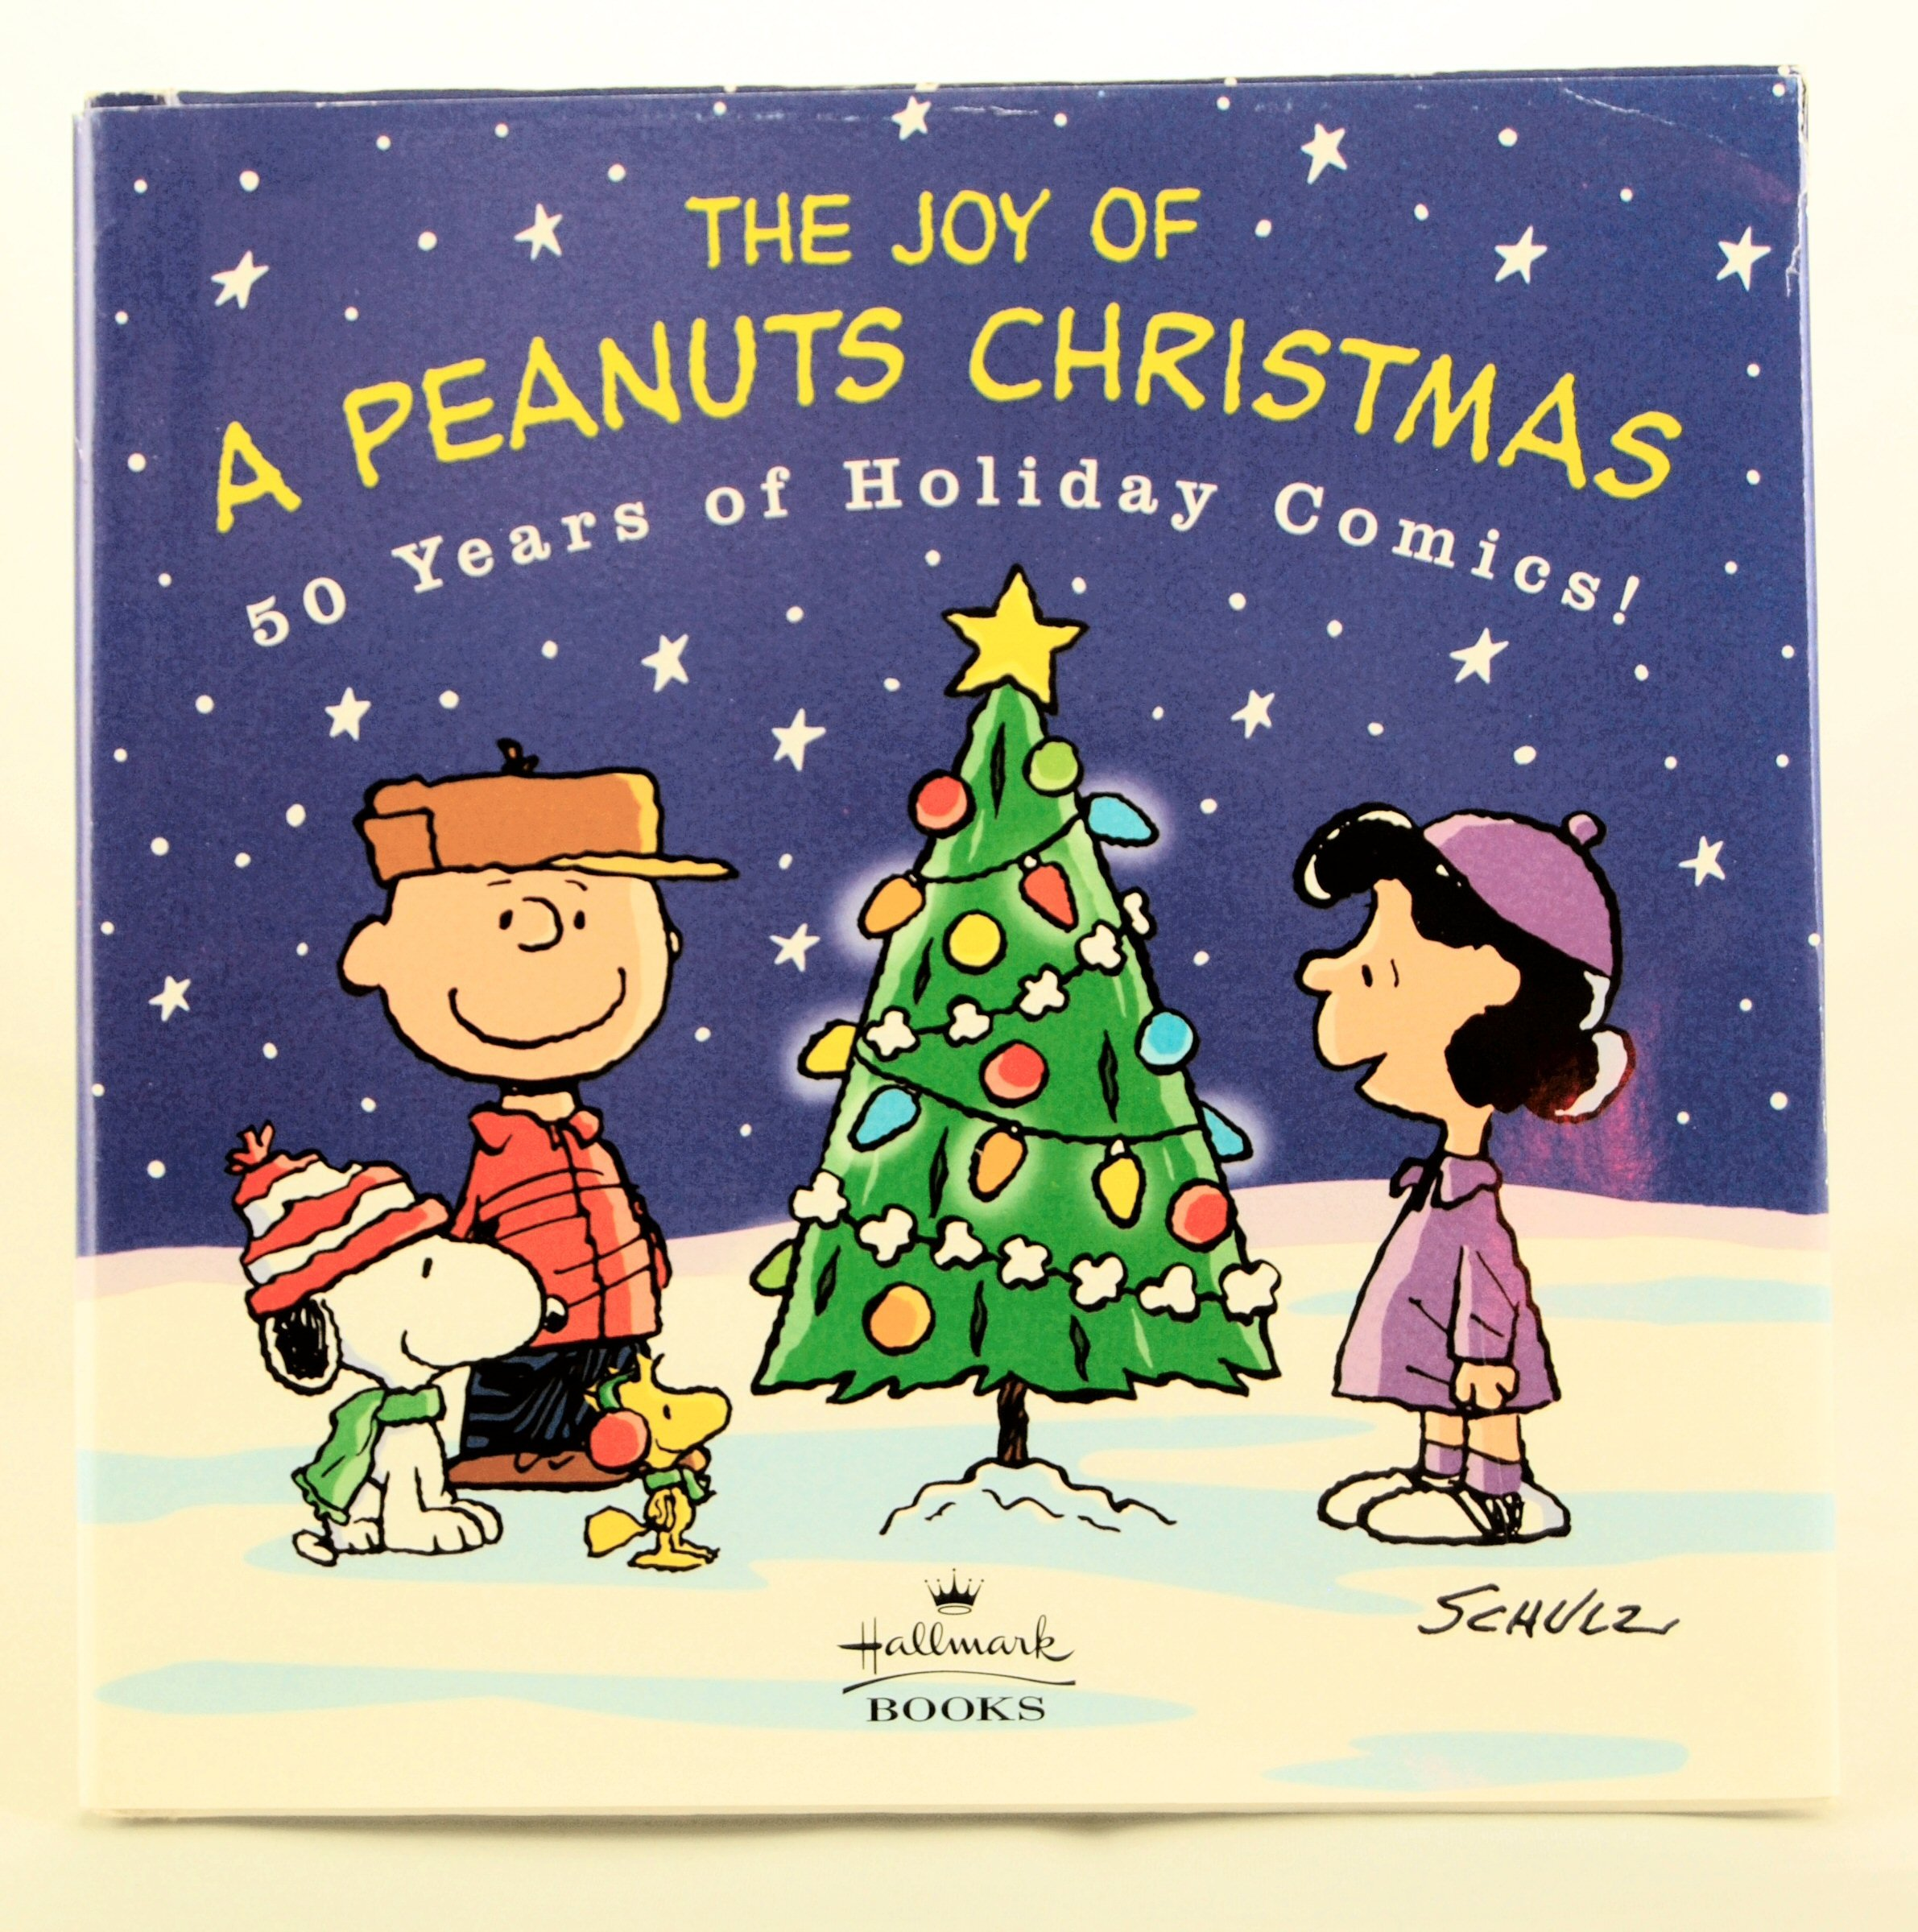 the joy of a peanuts christmas 50 years of holiday comics charles m schulz 0150126285628 amazoncom books - Peanuts Christmas